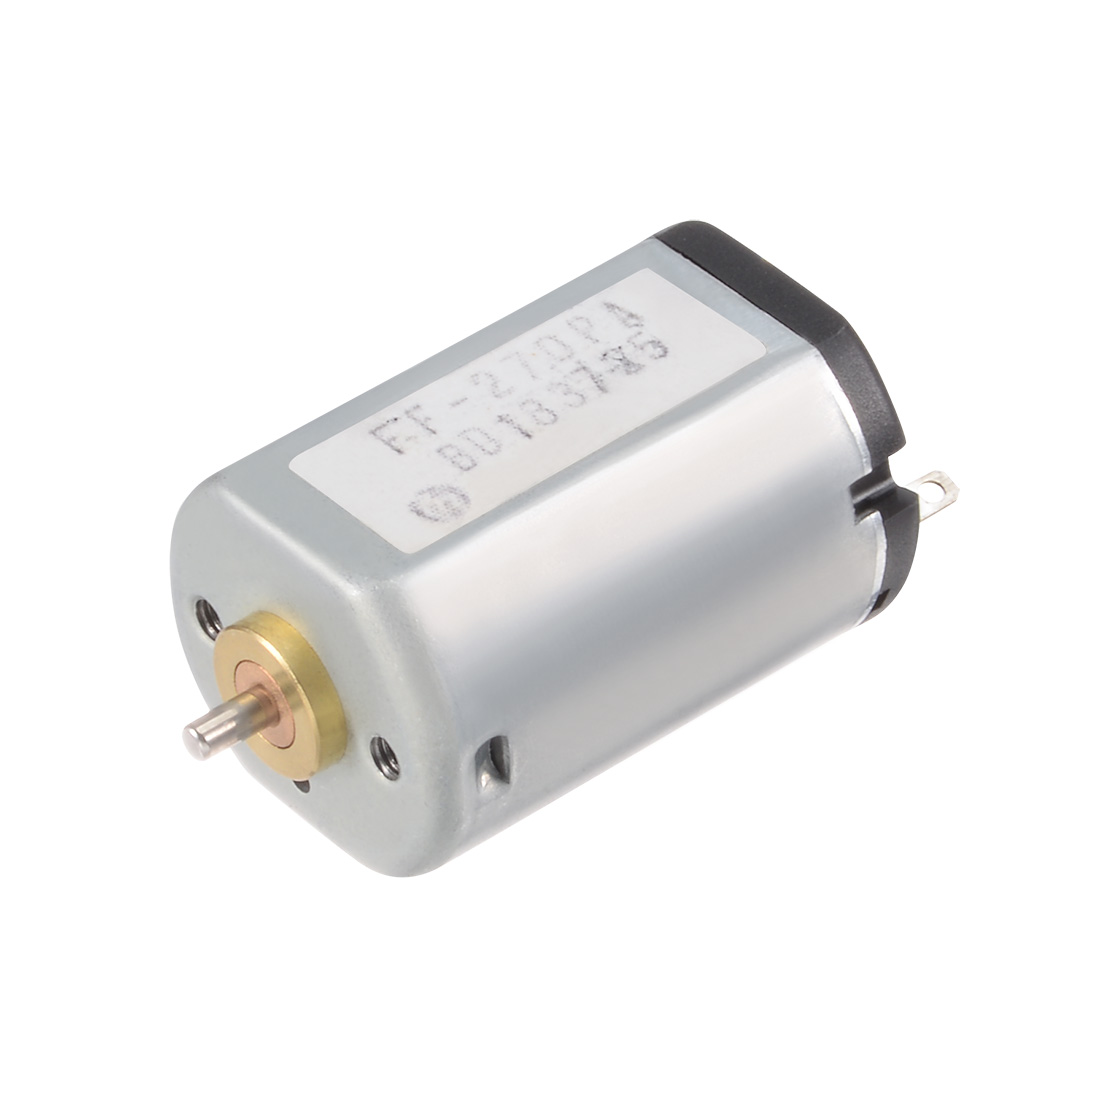 Micro Motor DC 3V 7000RPM High Speed Motor for DIY Toy Models Remote Control